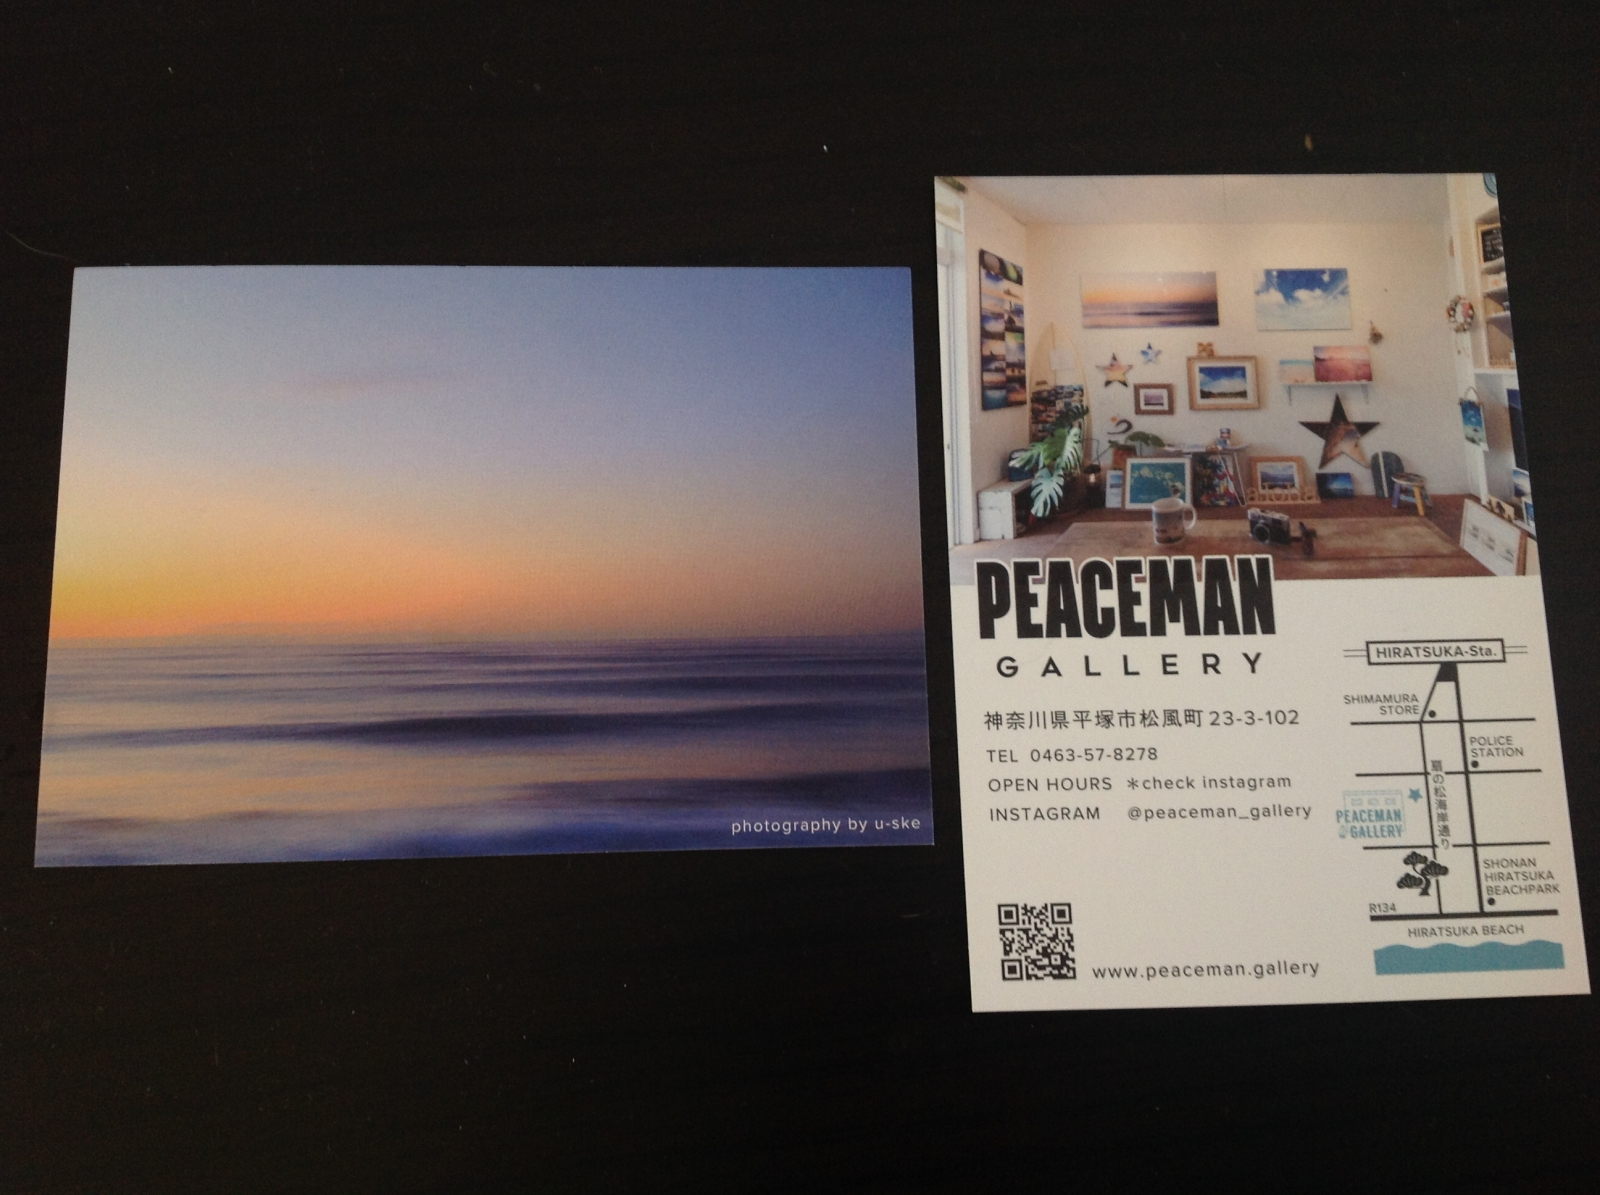 Peaceman Gallery